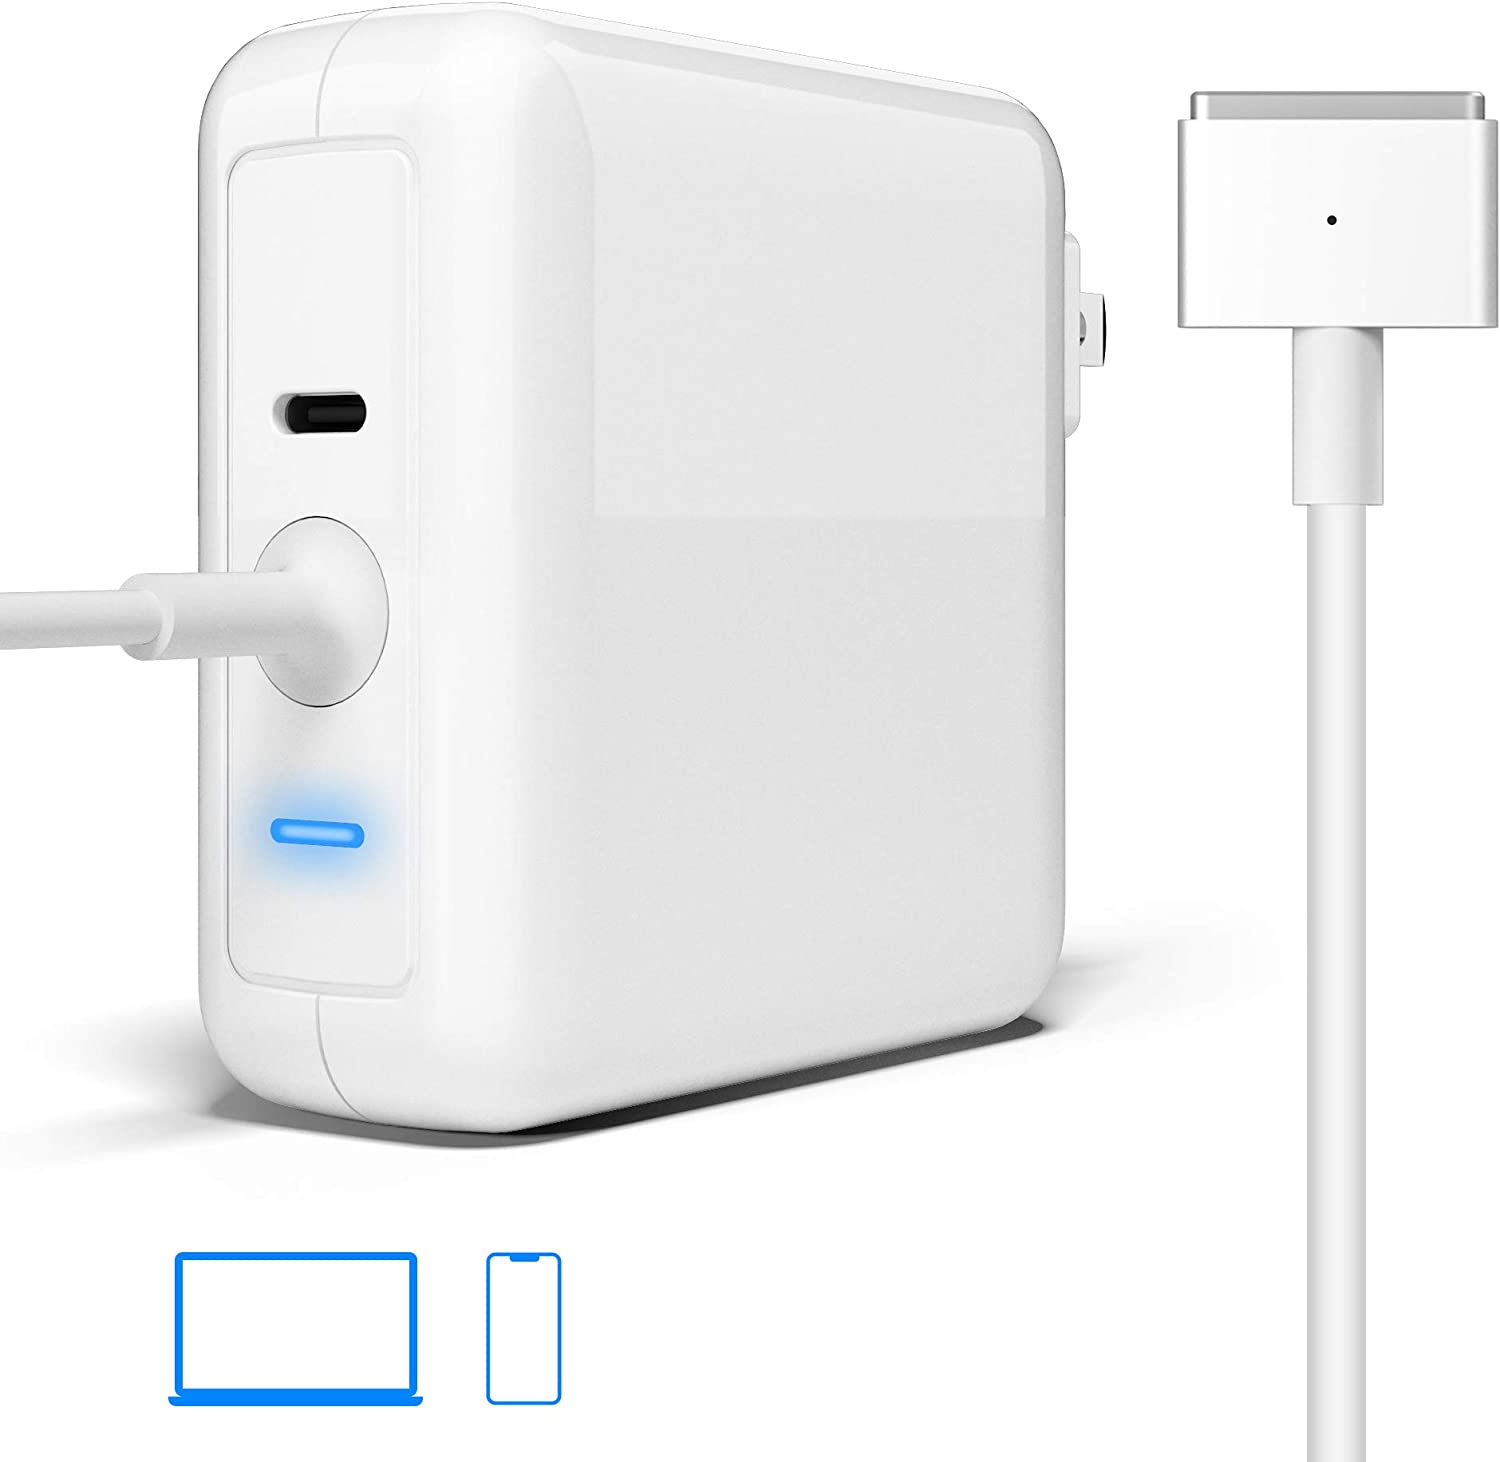 Compatible with MacBook Pro Charger, 60W T-Tip Magsafe 2 Laptop Charger Adapter Replacement Macbook Pro Charger for MacBook Pro Retina 11/13 inch| USB C 18W PD Charger |Charge Phone, Mac from One Plug